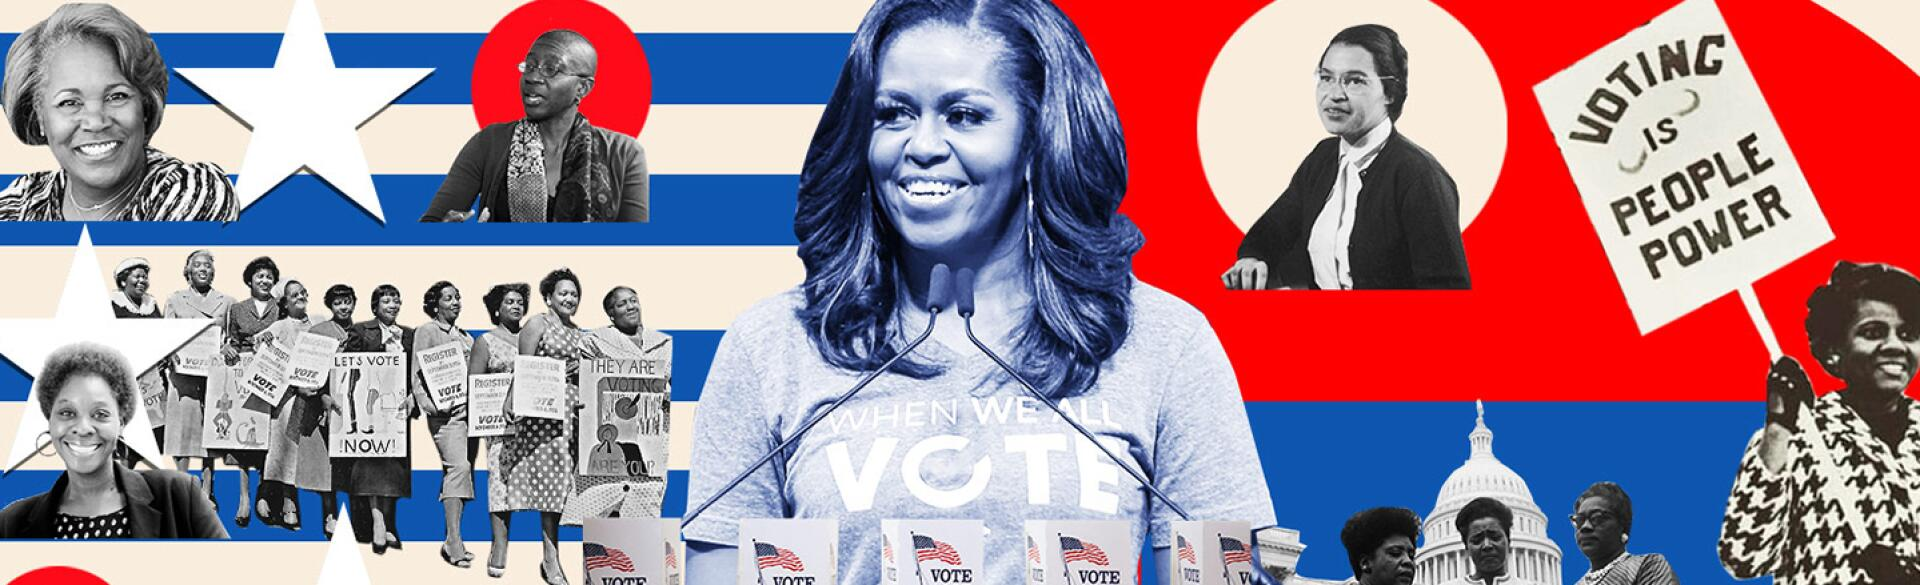 photo_collage_of_women_voting_related_images_by_lyne_lucien_1440x584